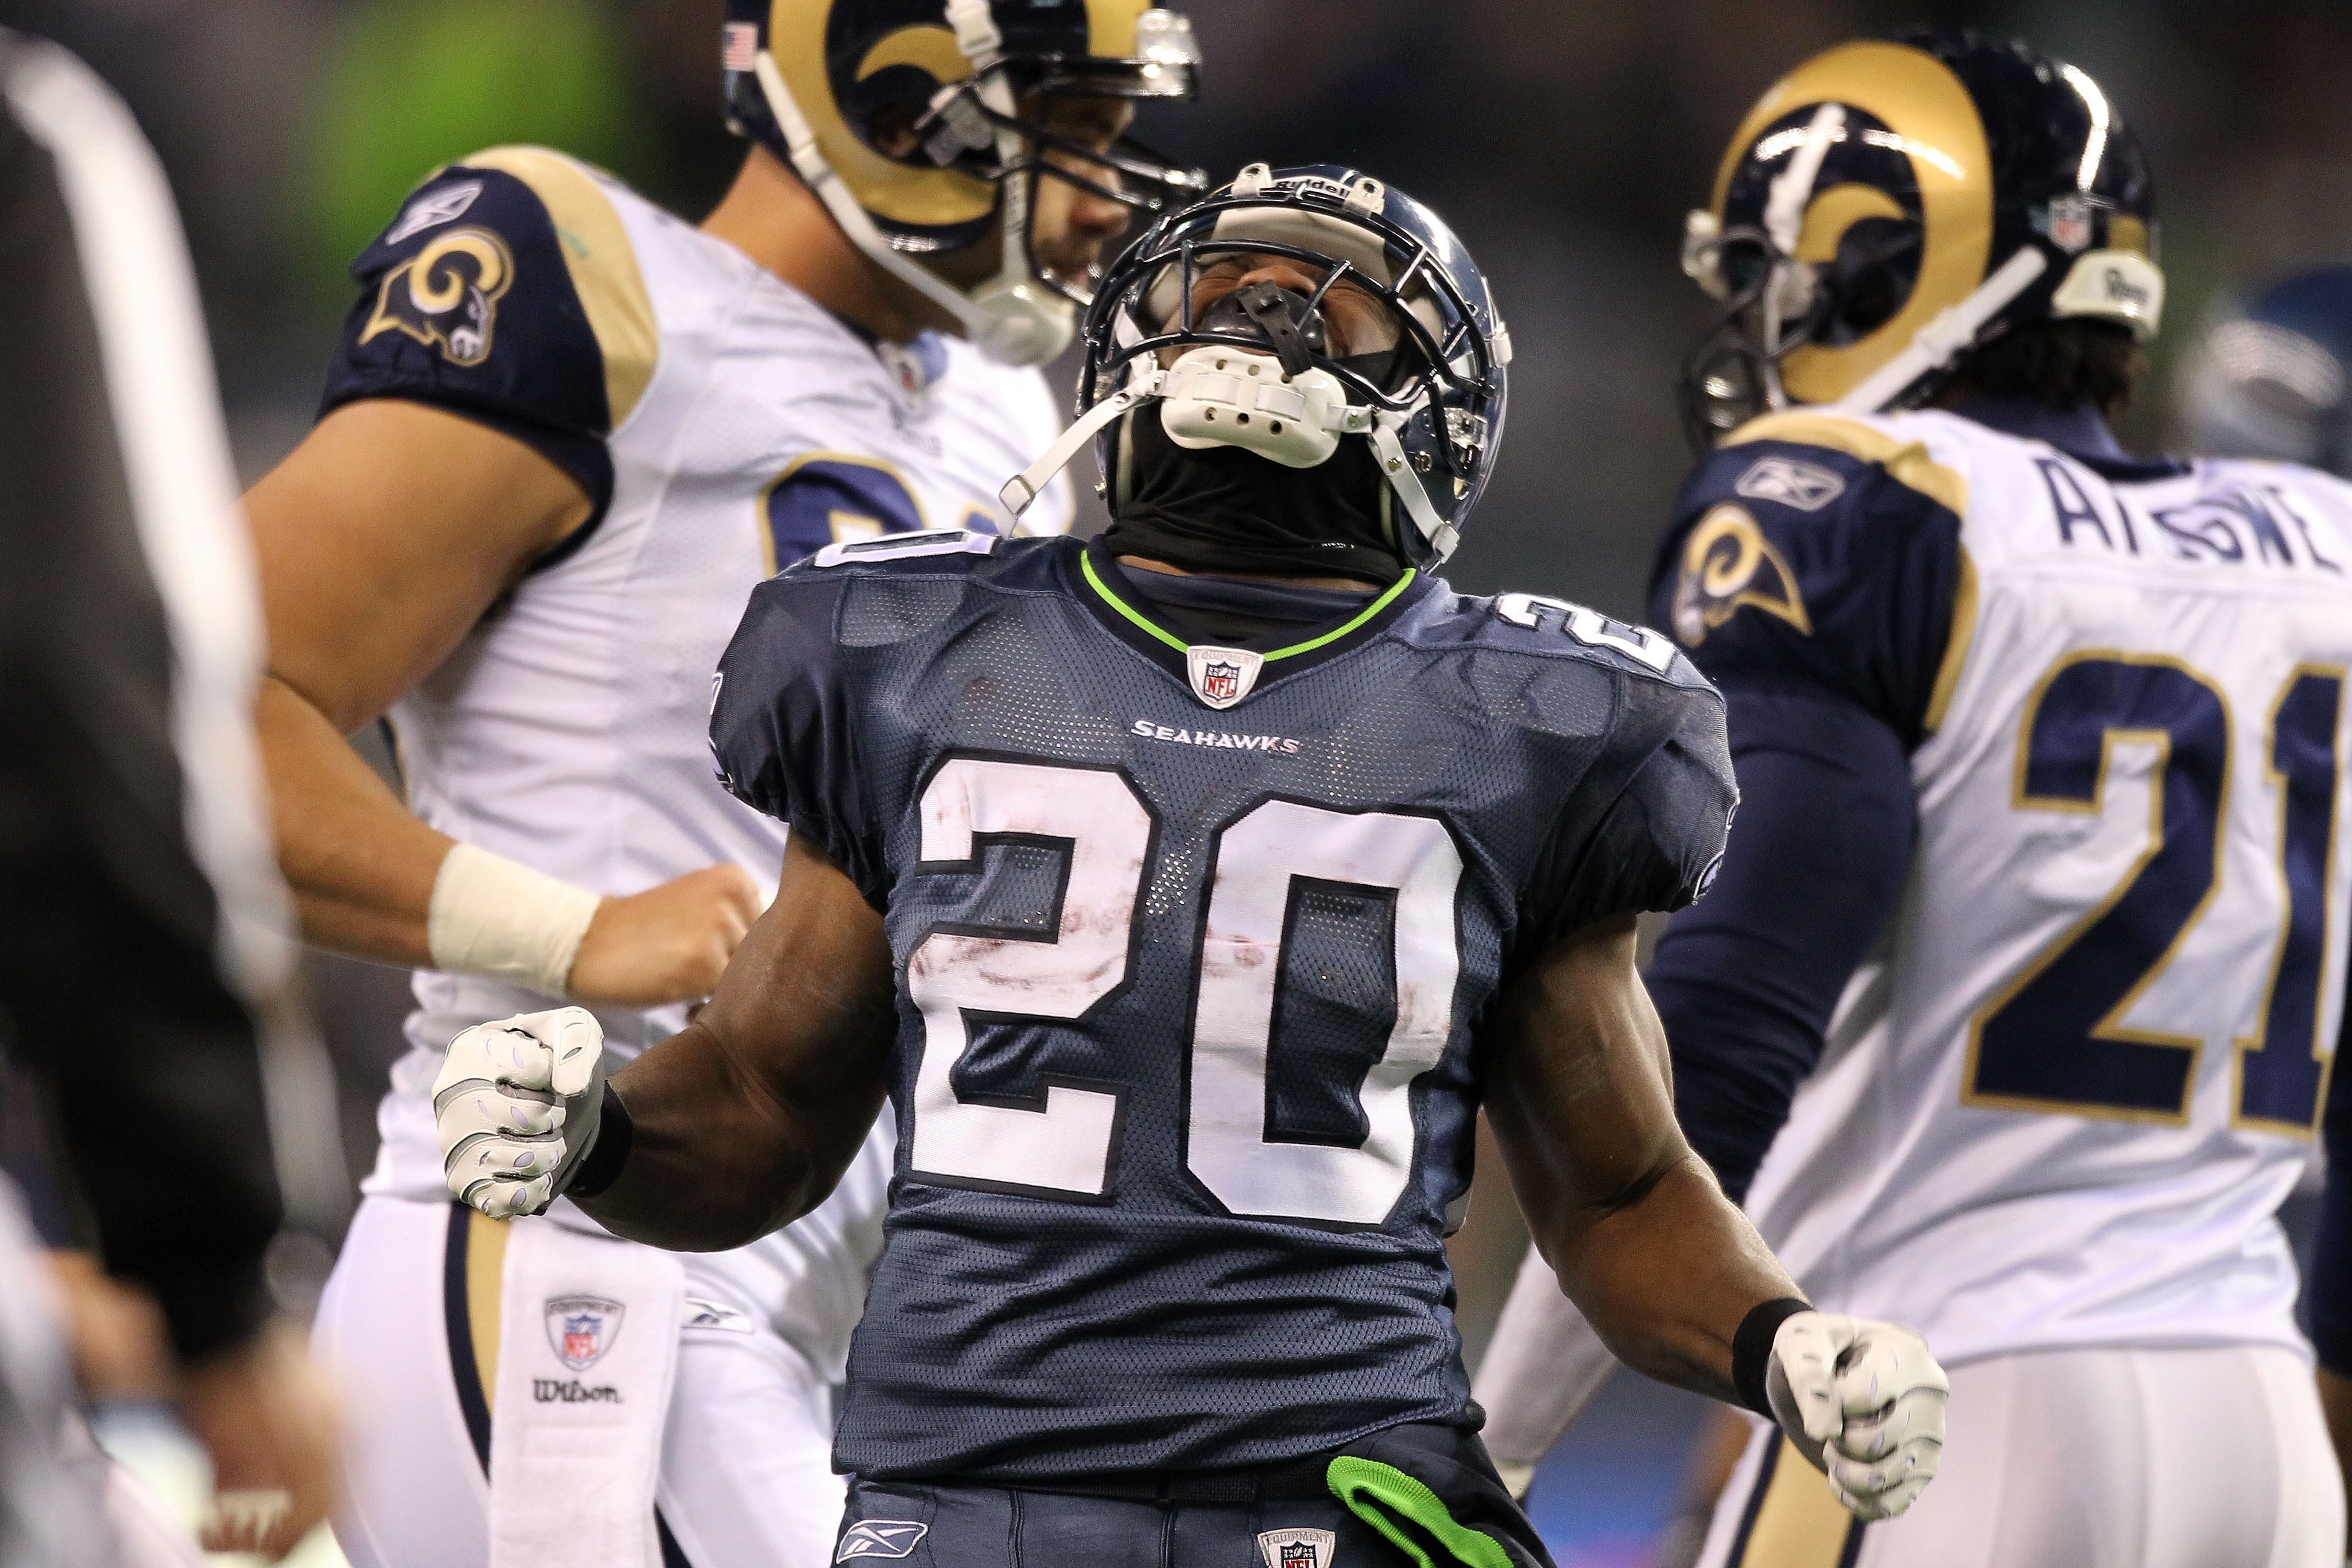 SEATTLE, WA - JANUARY 02:  Running back Justin Forsett #20 of the Seattle Seahawks celebrates after a run against the St. Louis Rams during their game at Qwest Field on January 2, 2011 in Seattle, Washington.  (Photo by Otto Greule Jr/Getty Images)